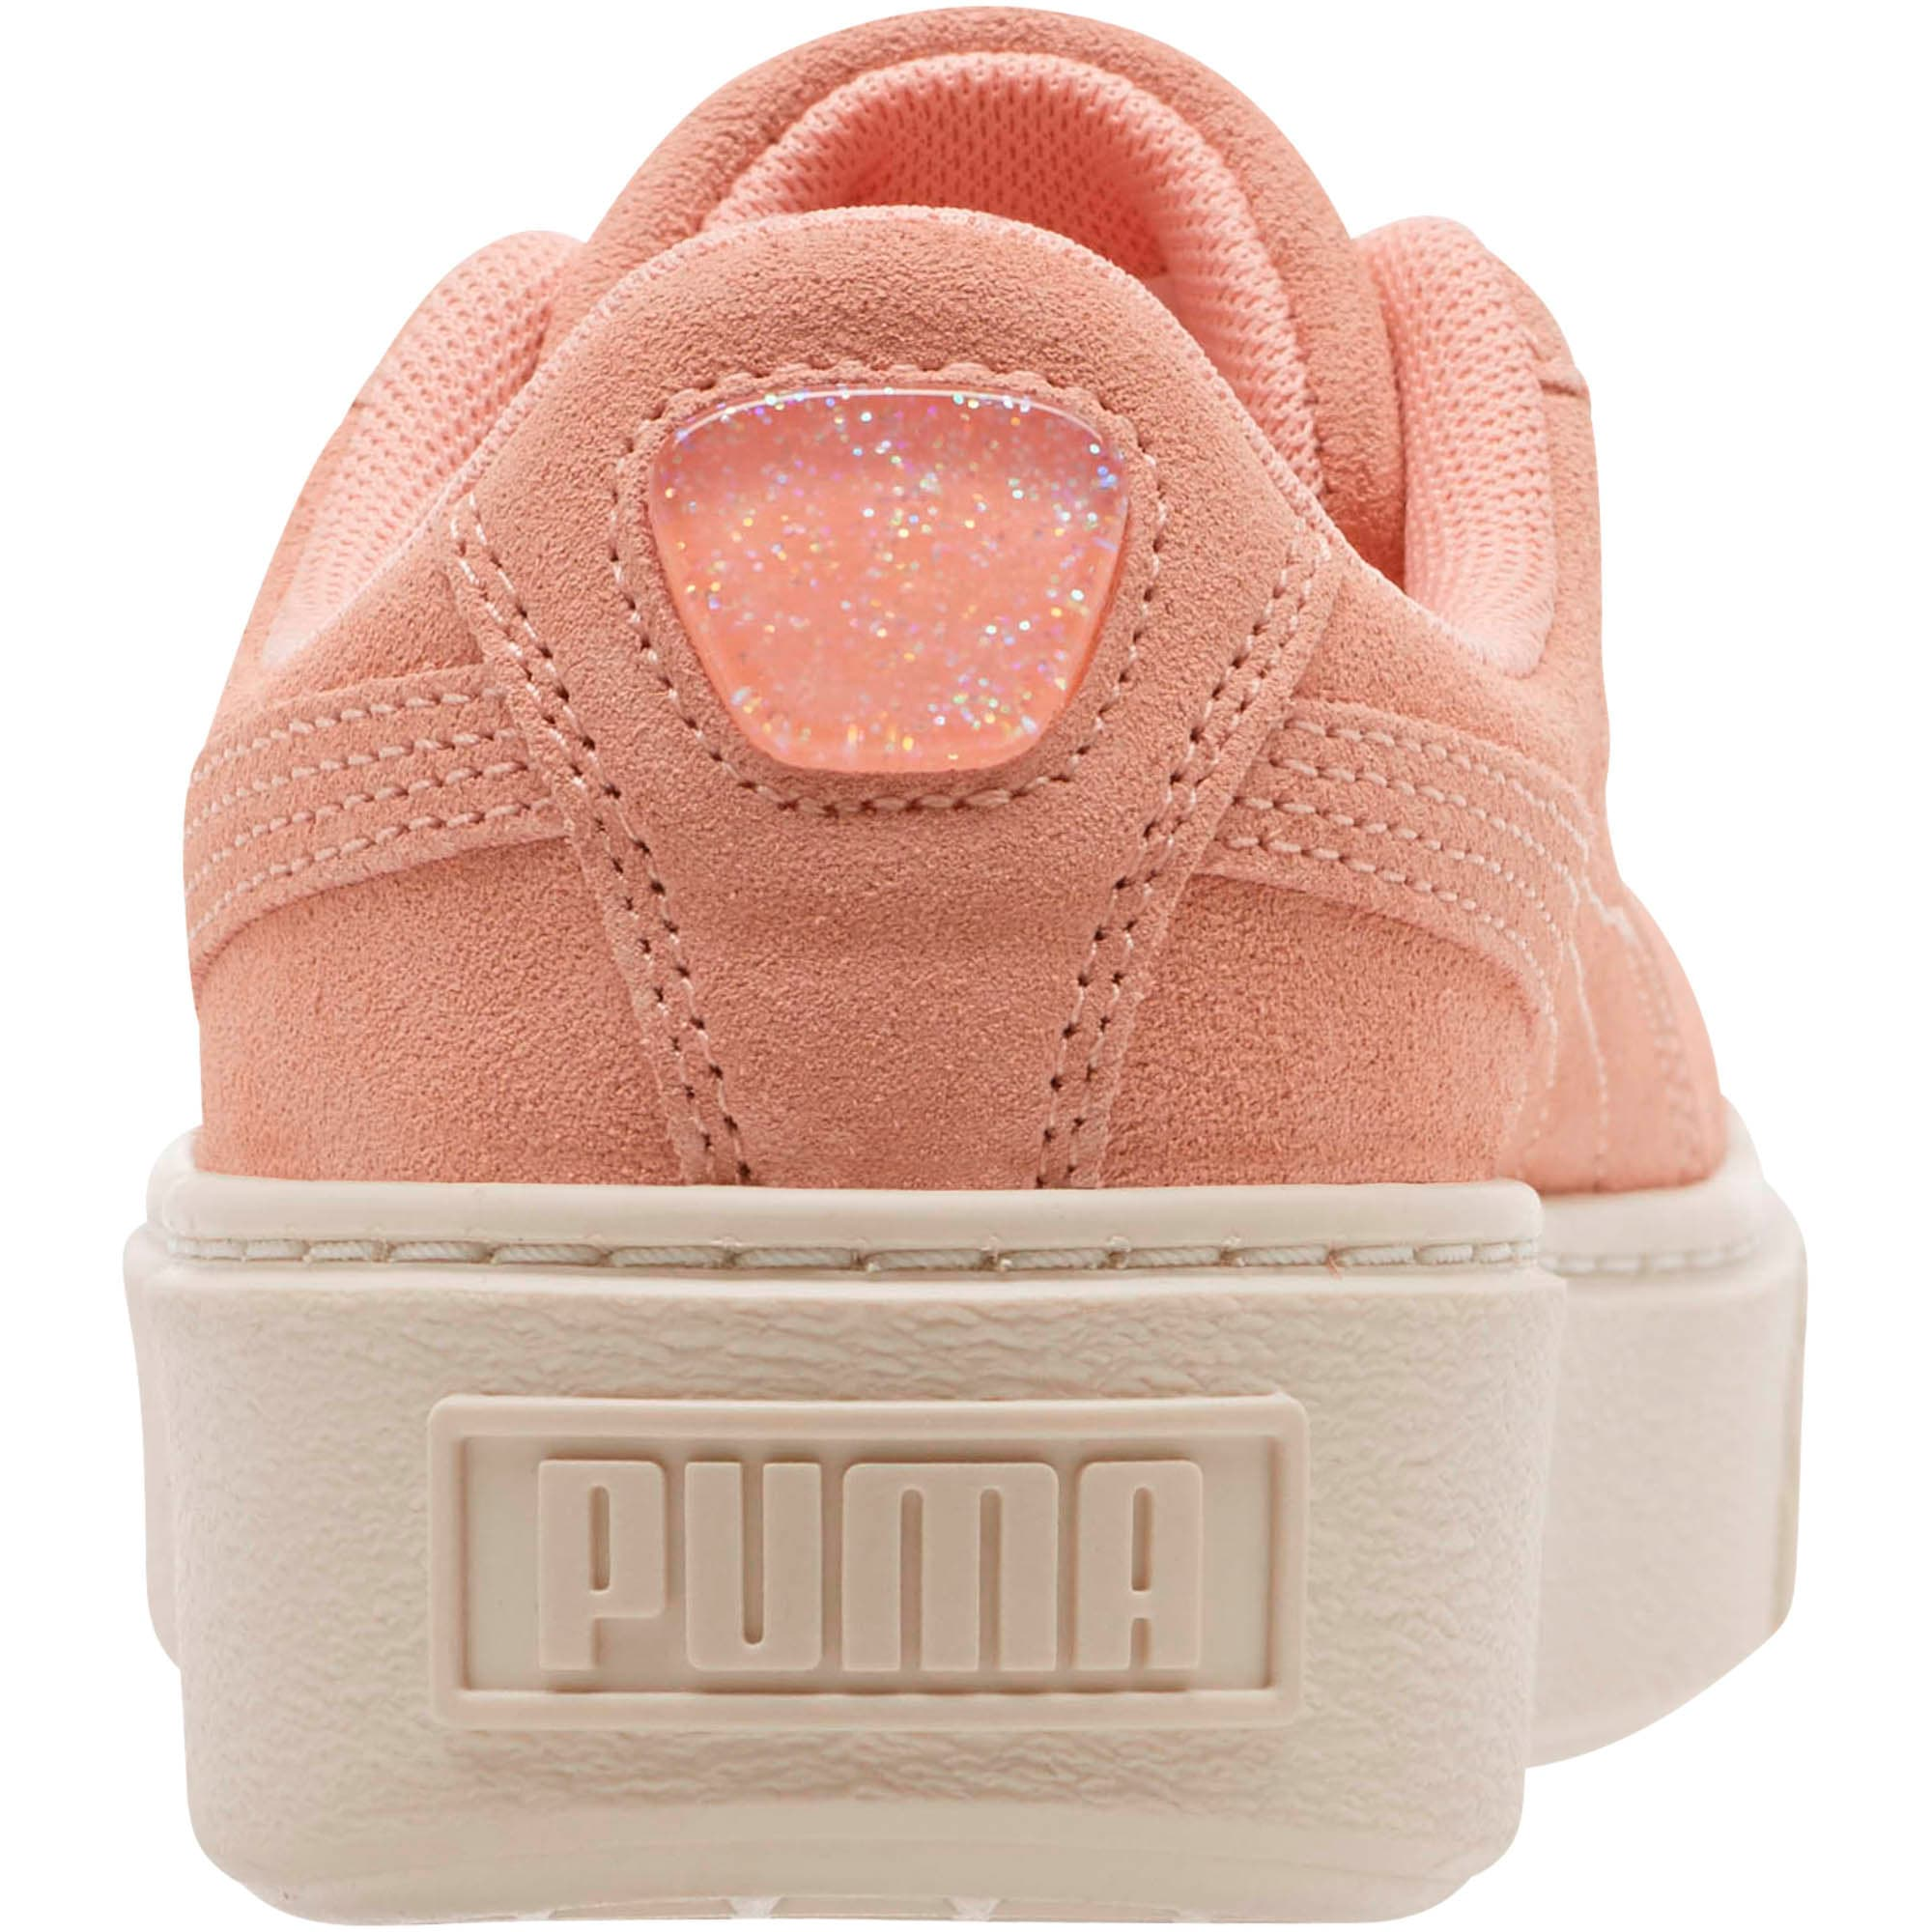 Zapatos deportivos Suede Super Jewel con plataforma para junior, Peach Bud-Whisper White, grande